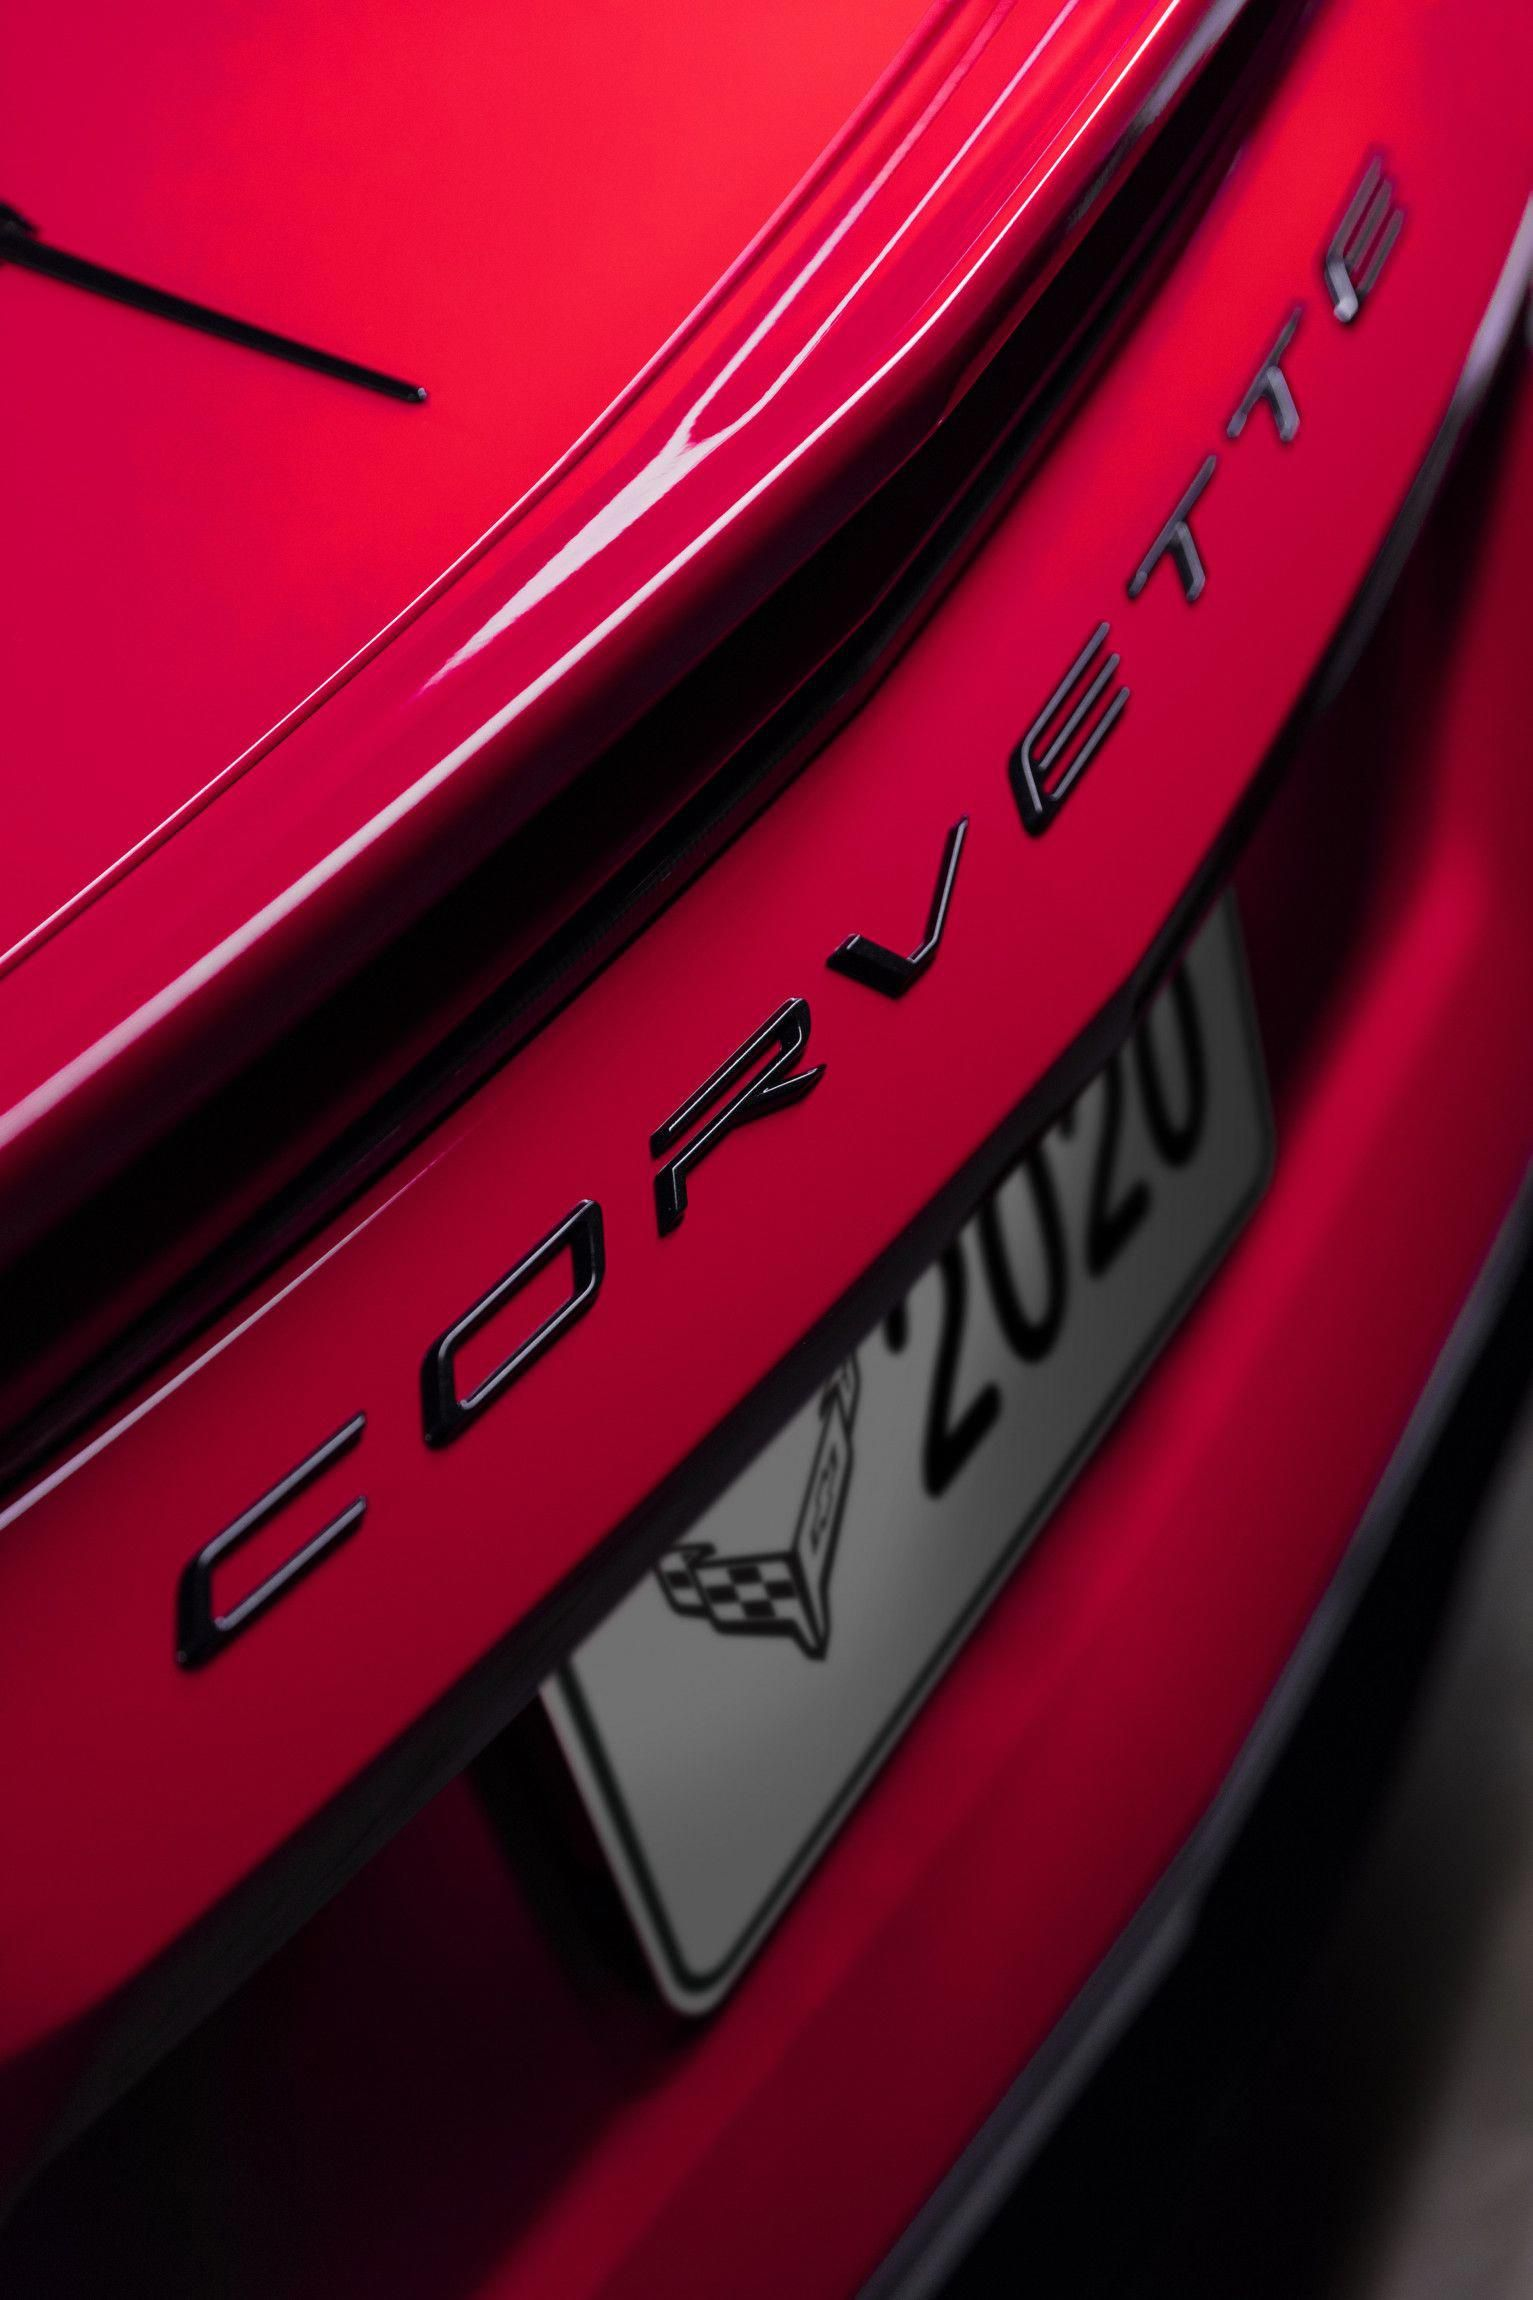 Zora S Dream Fulfilled Chevrolet Unveils 2020 C8 Corvette Stingray Mid Engine Power And Technology Rev Corvette Stingray Chevrolet Corvette Stingray Corvette